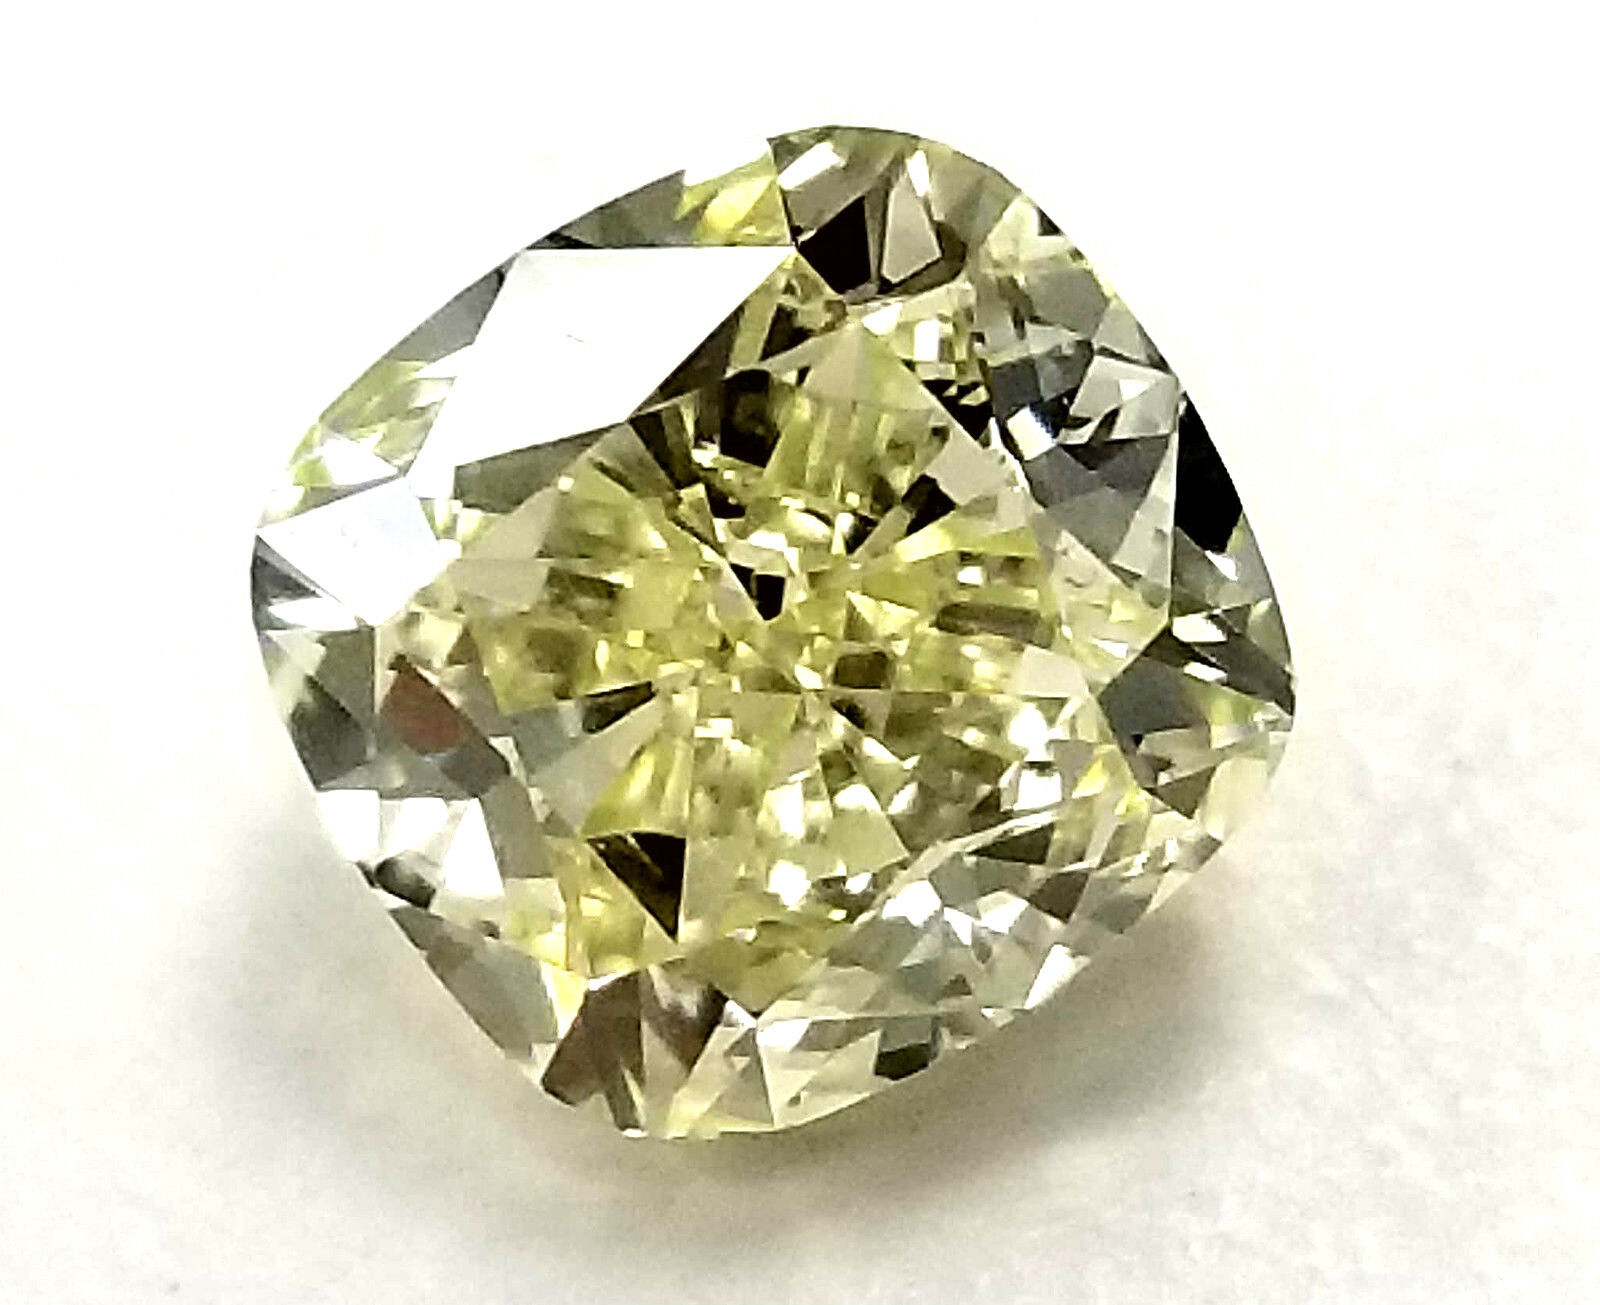 3 CT YELLOW COLOR NATURAL LOOSE DIAMOND HUGE GIA CERTIFIED CUSHION CUT VS2